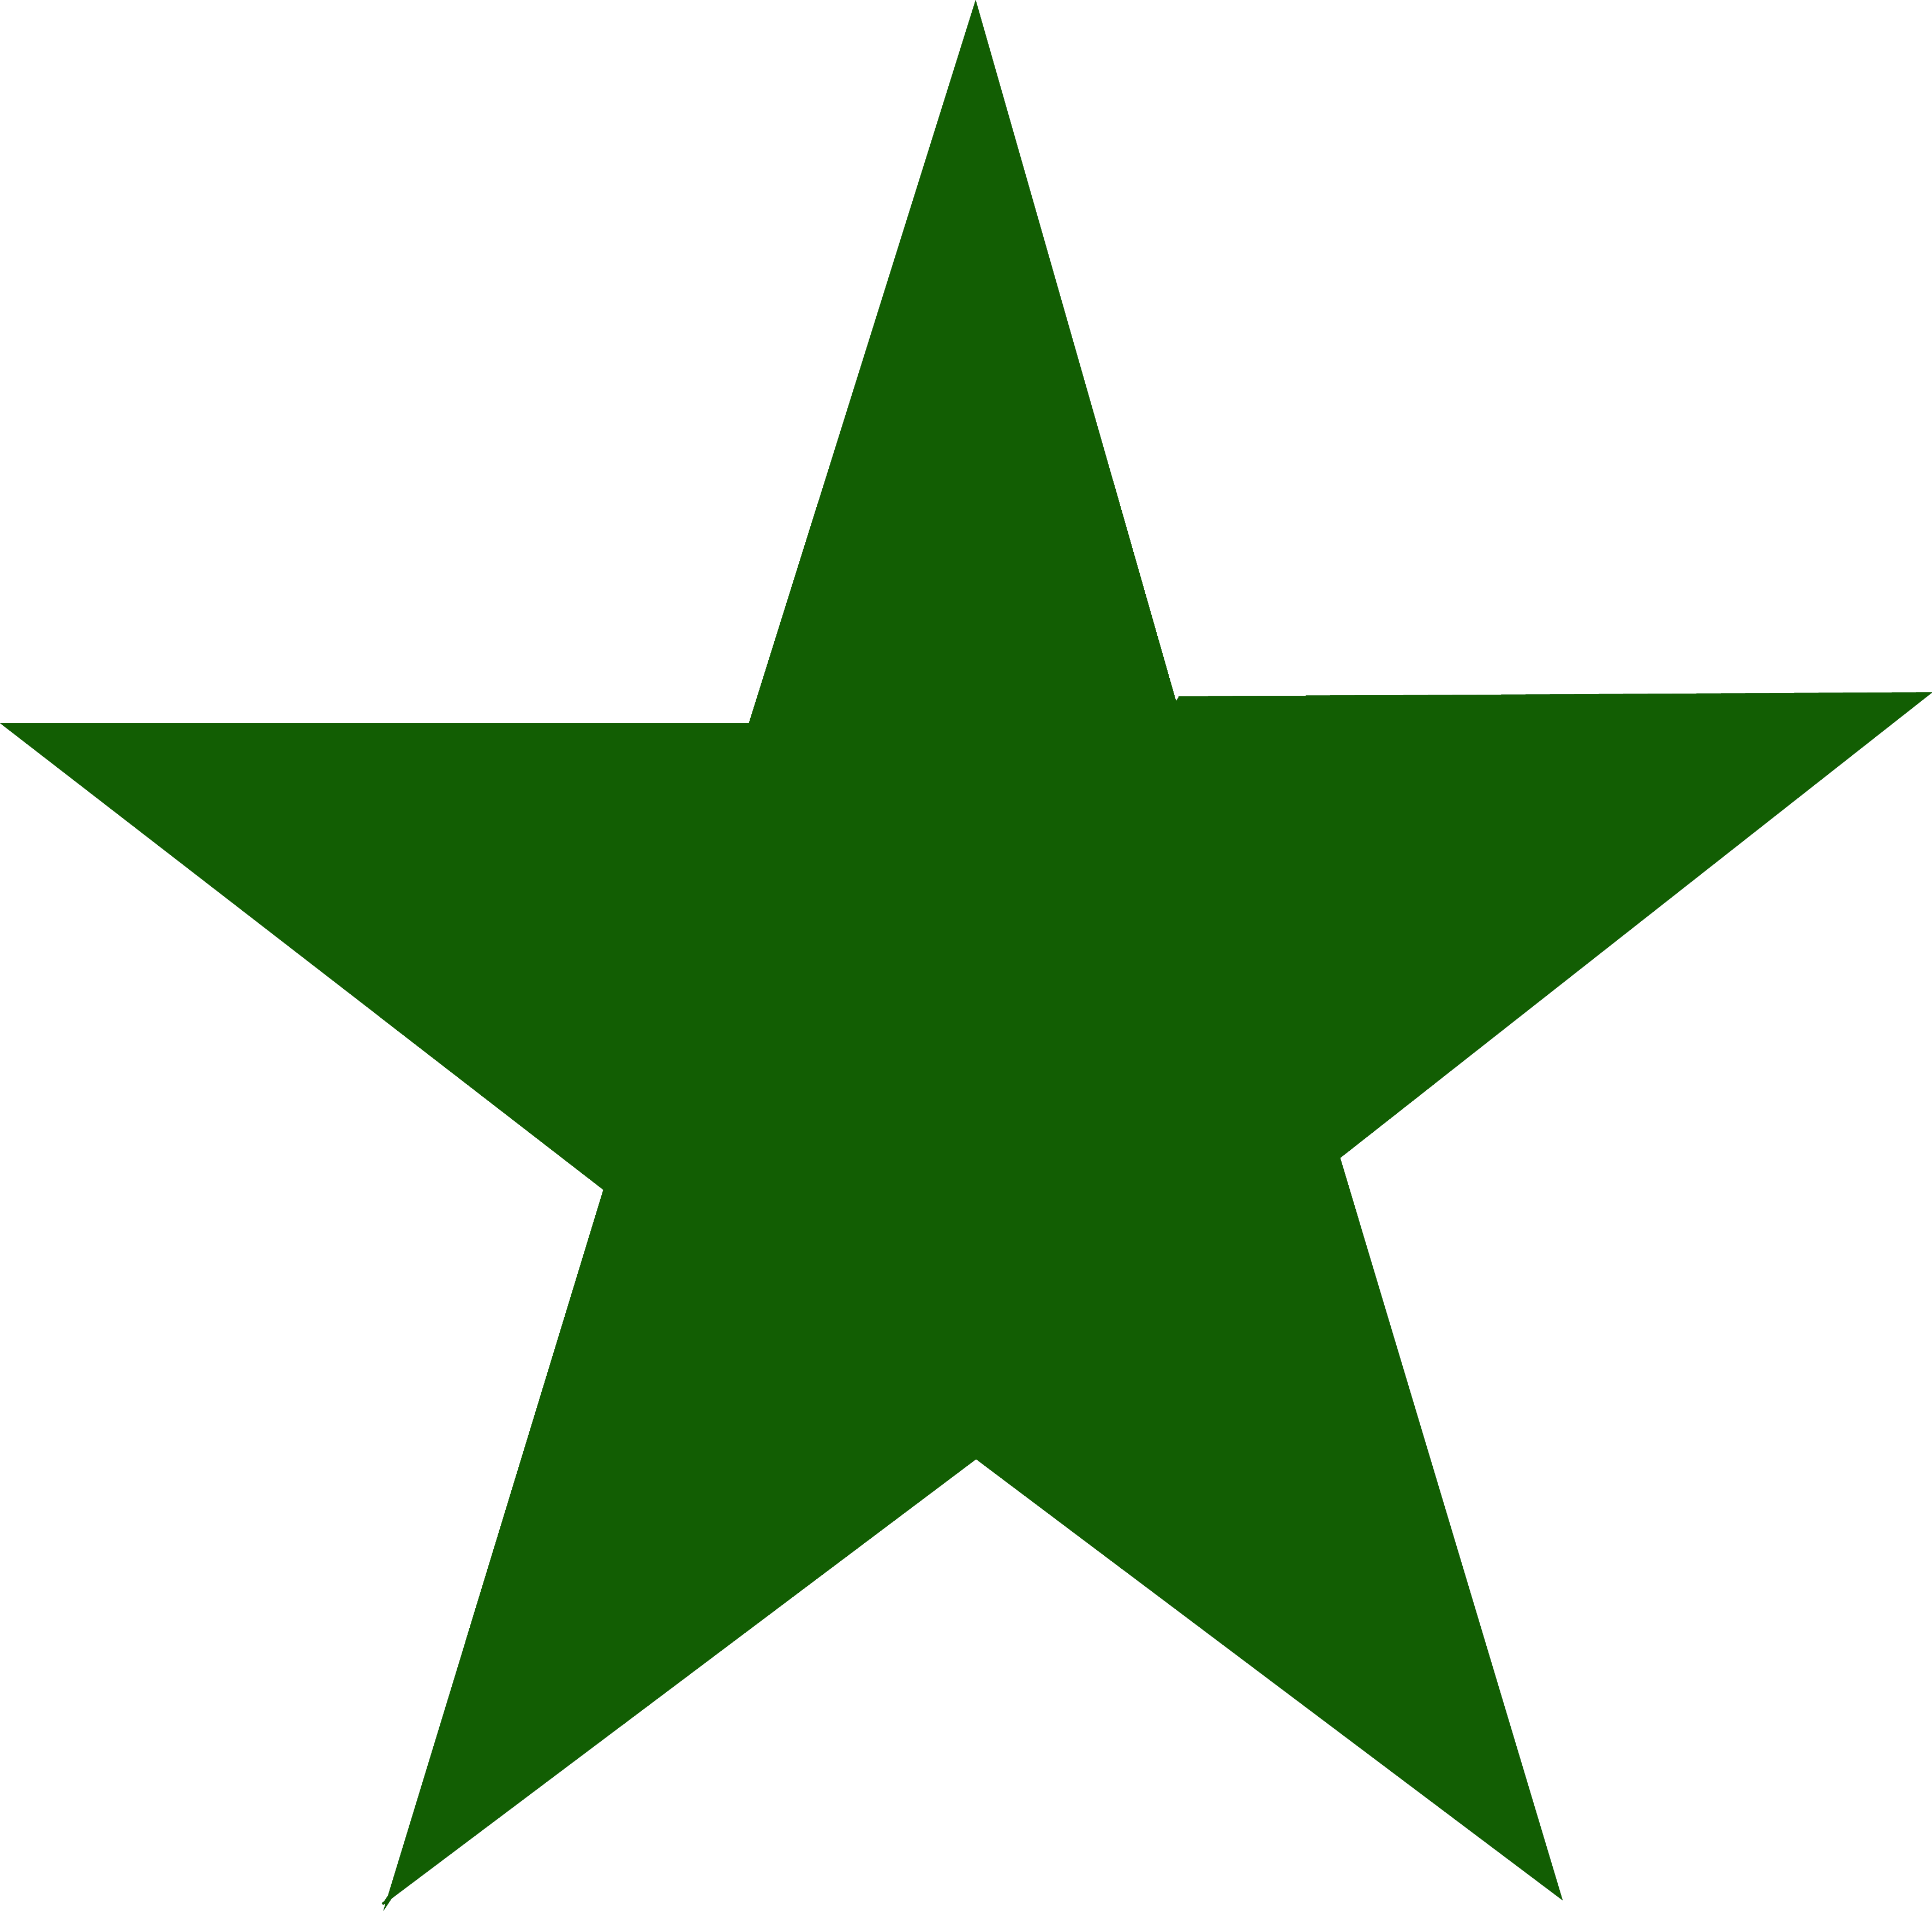 Green star clipart svg black and white library 28+ Collection of Green Star Clipart | High quality, free cliparts ... svg black and white library